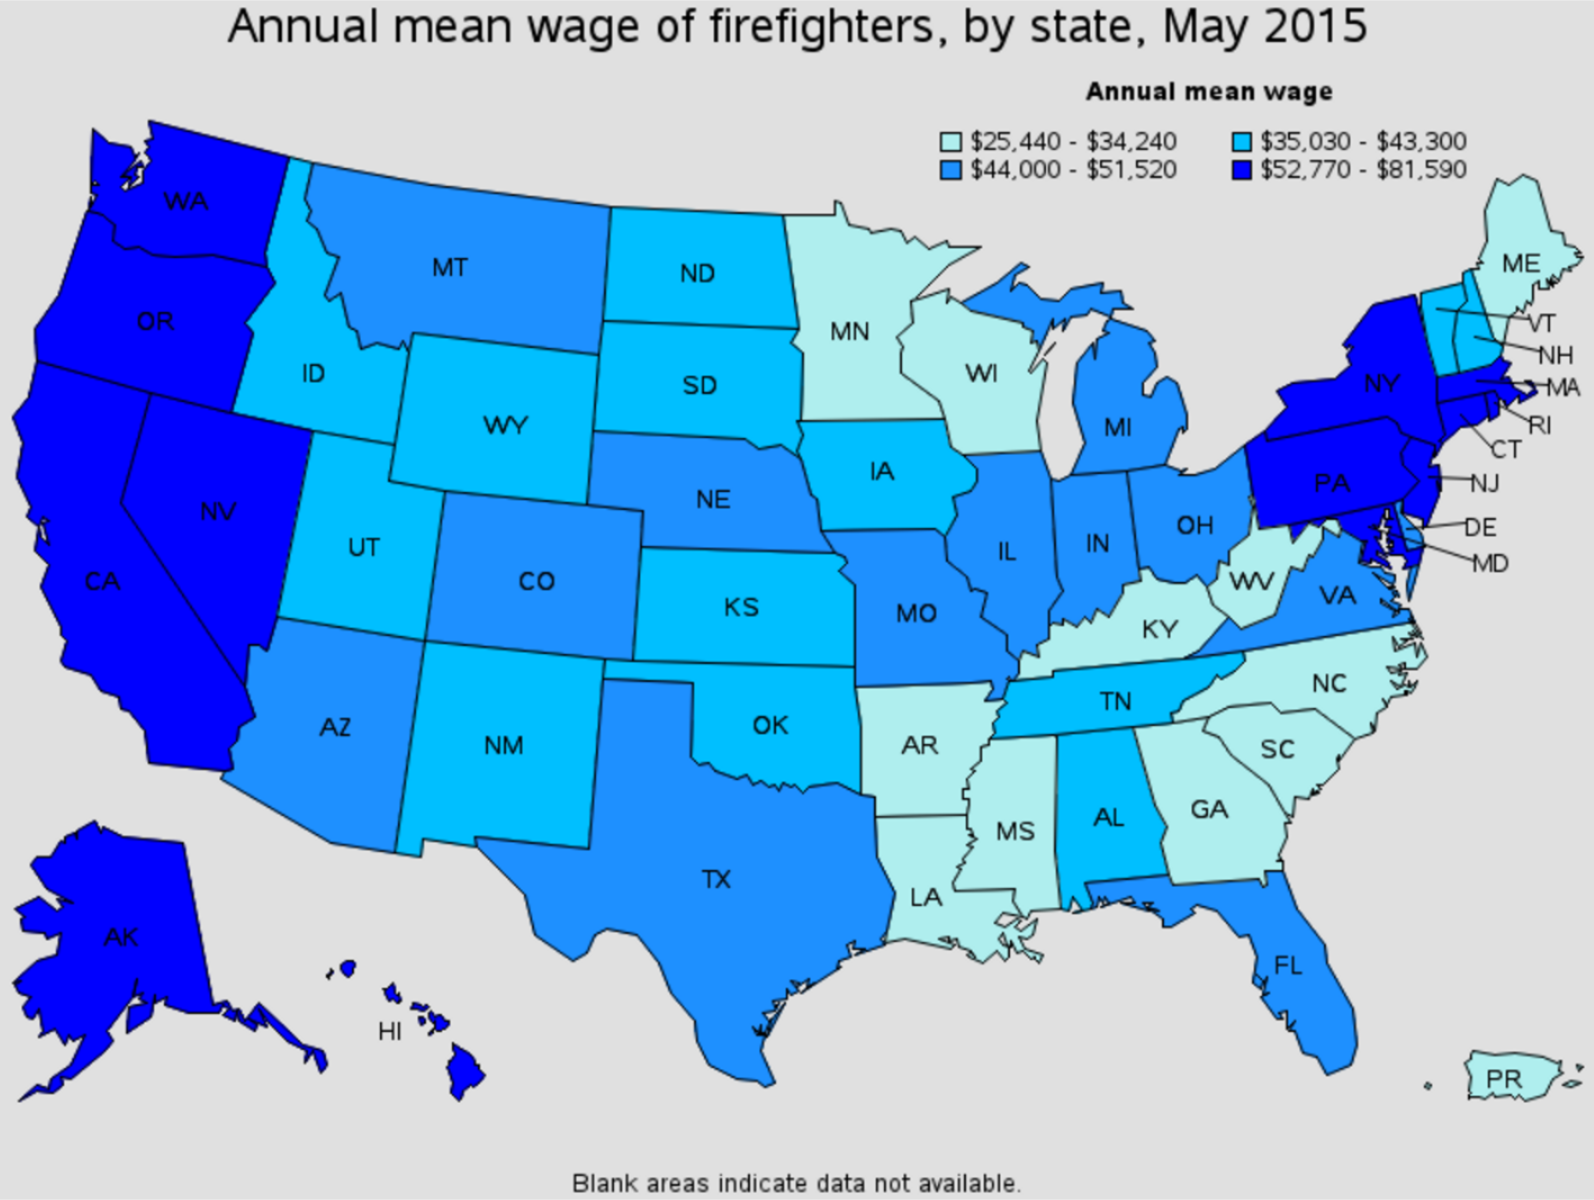 firefighter average salary by state Reno Nevada